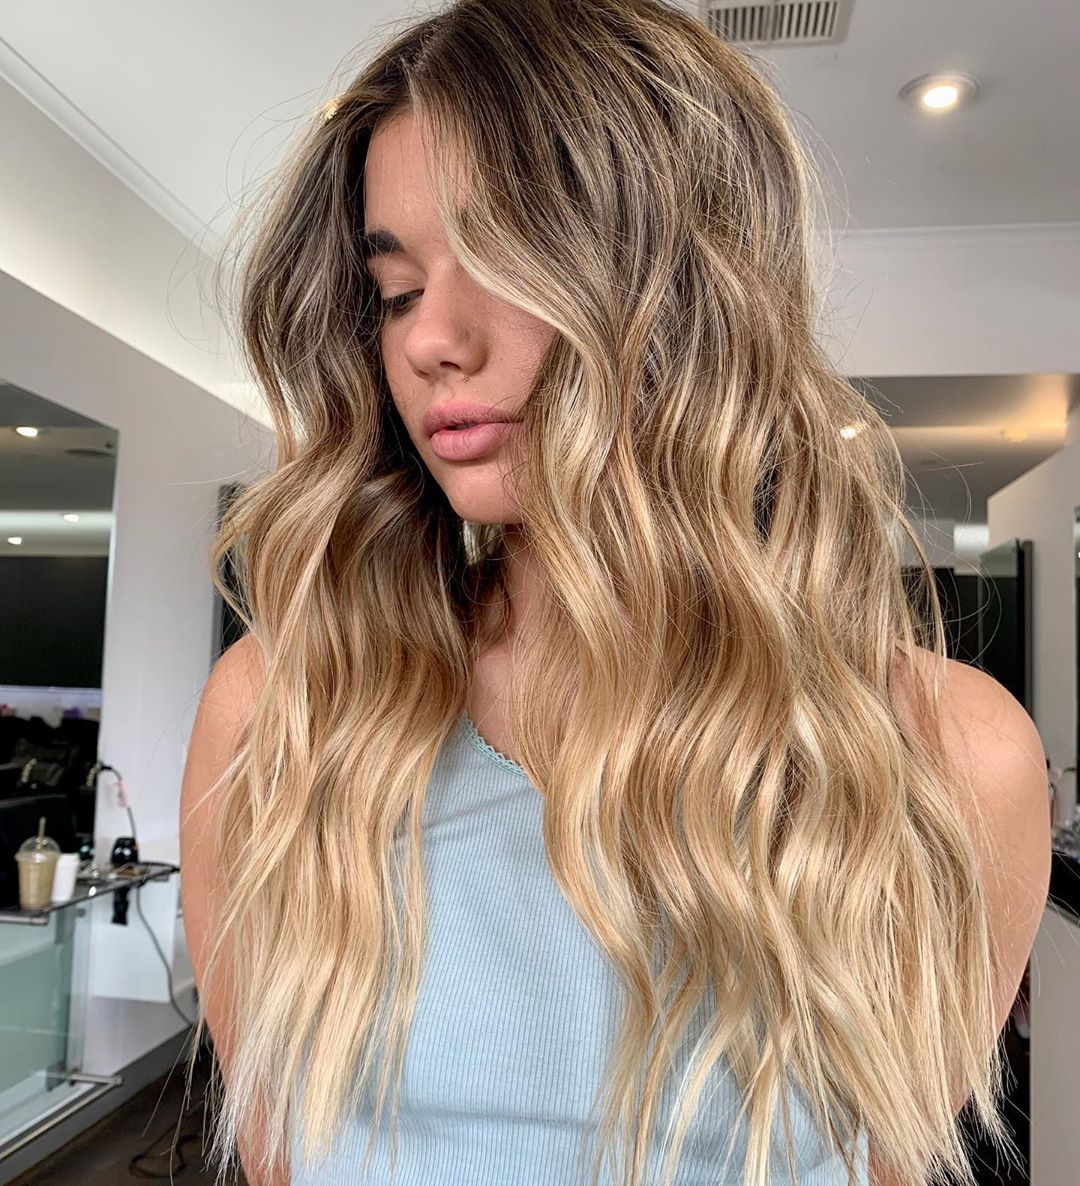 10 Hair Color Trends You'll Want to Try Immediatel